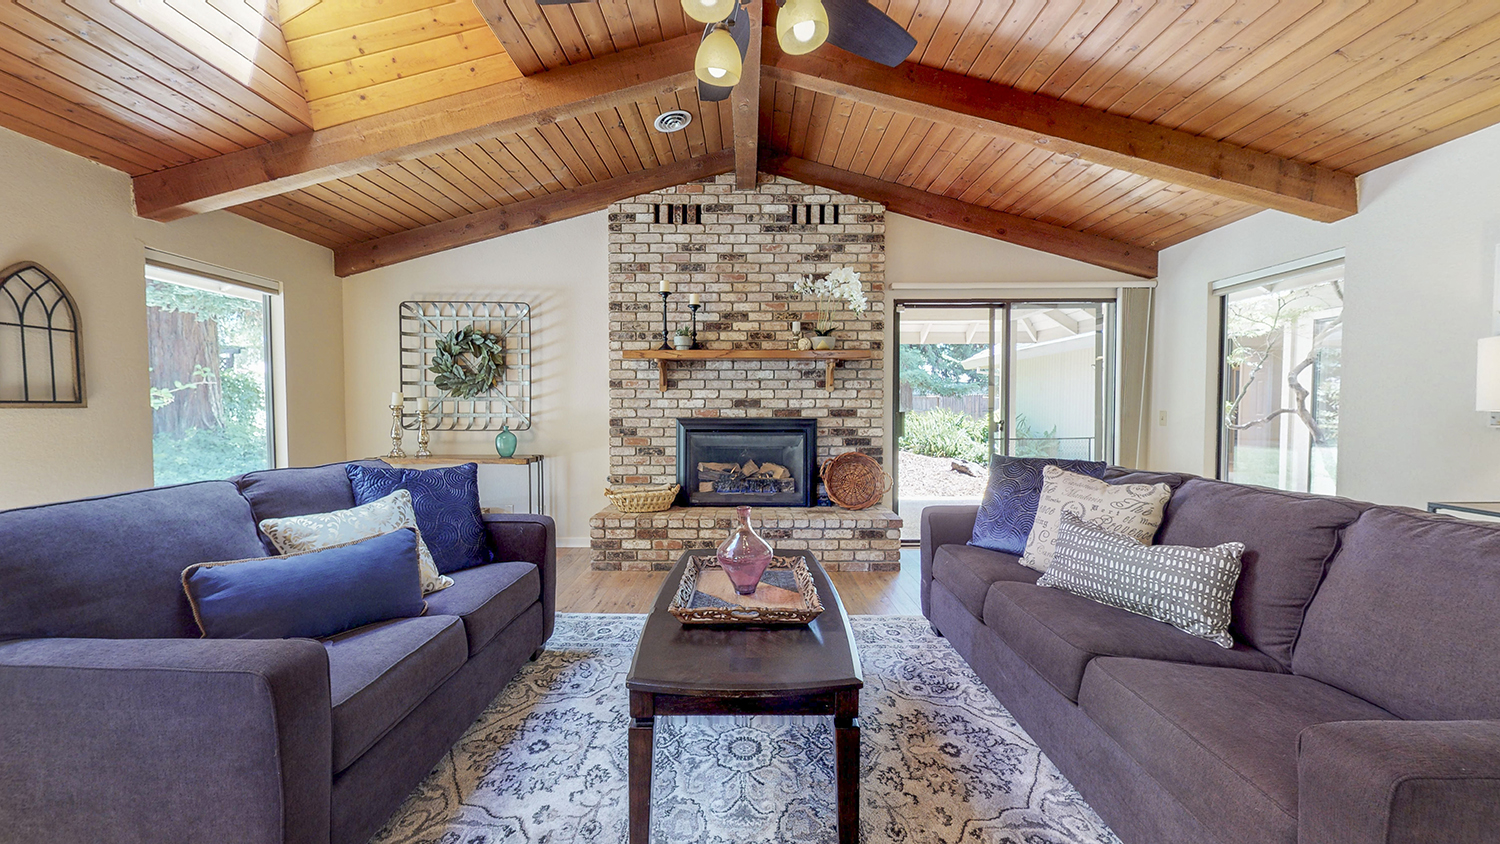 photography portfolio example - living room with brick fireplace and wooden ceiling